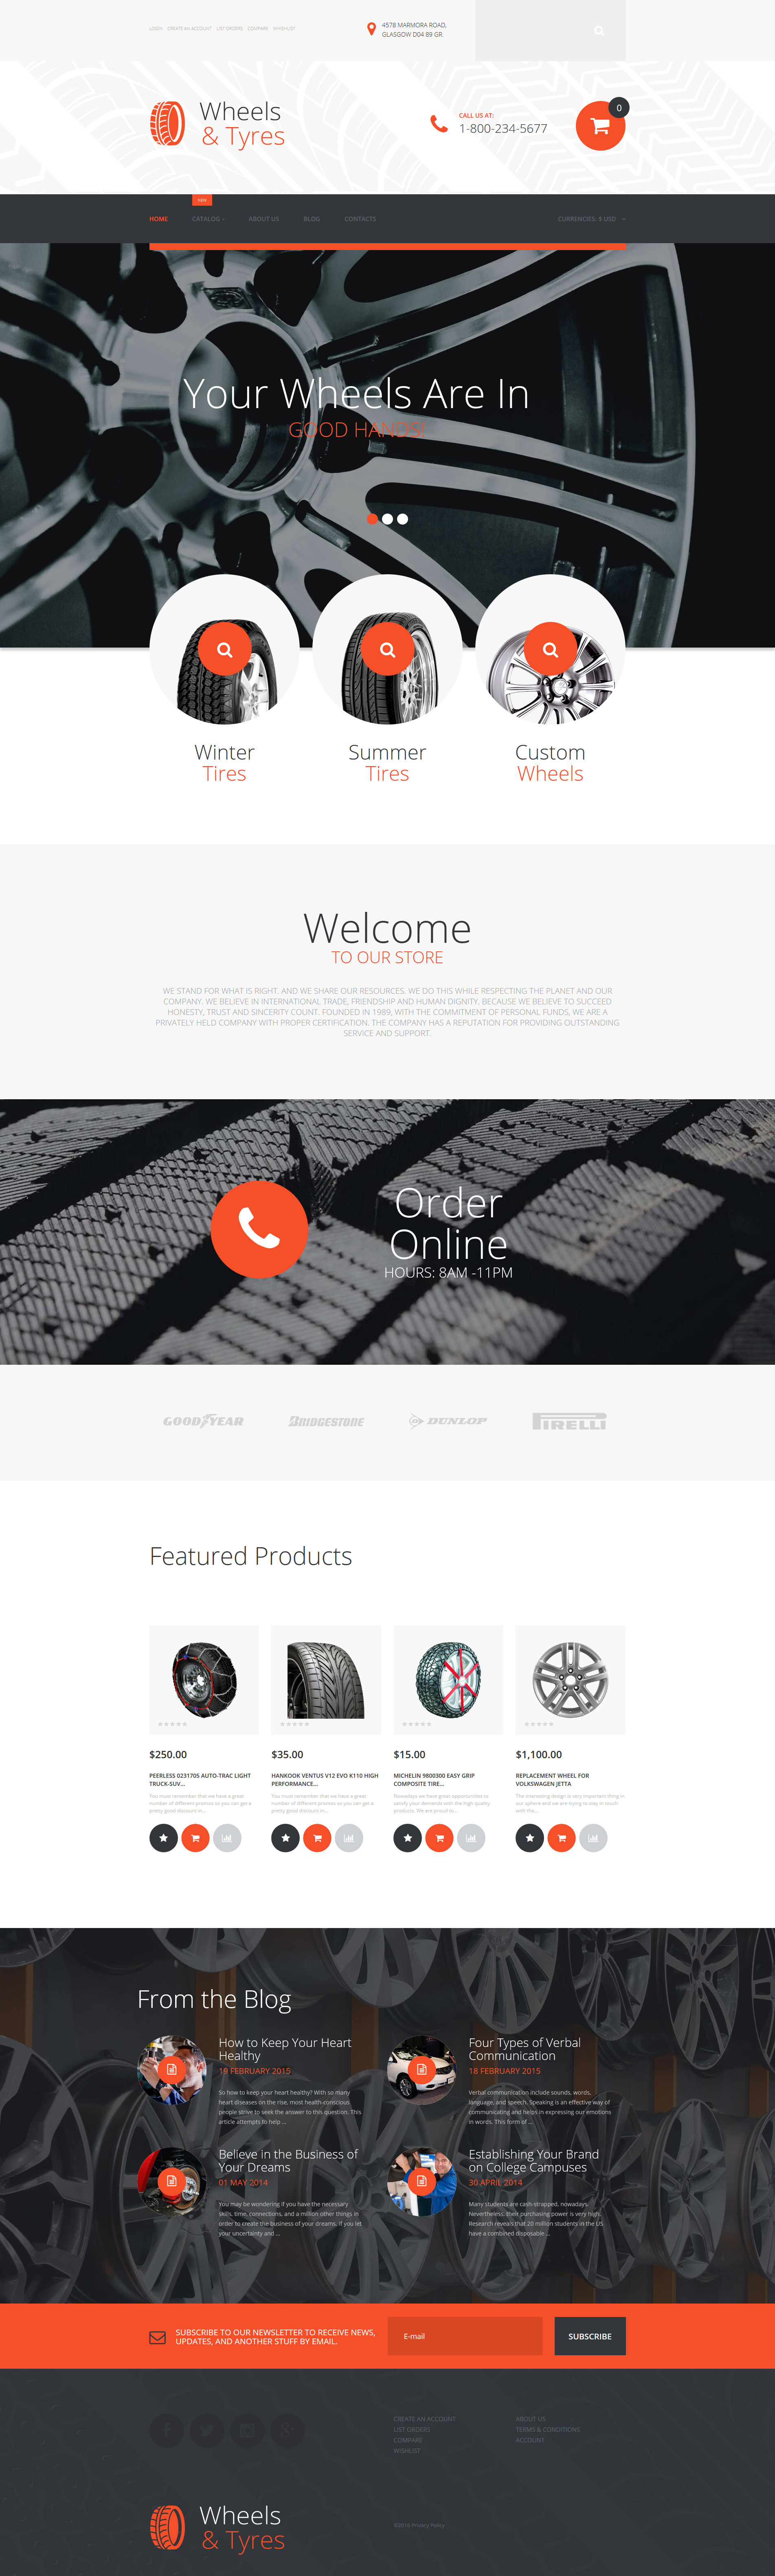 Wheels & Tires VirtueMart Template